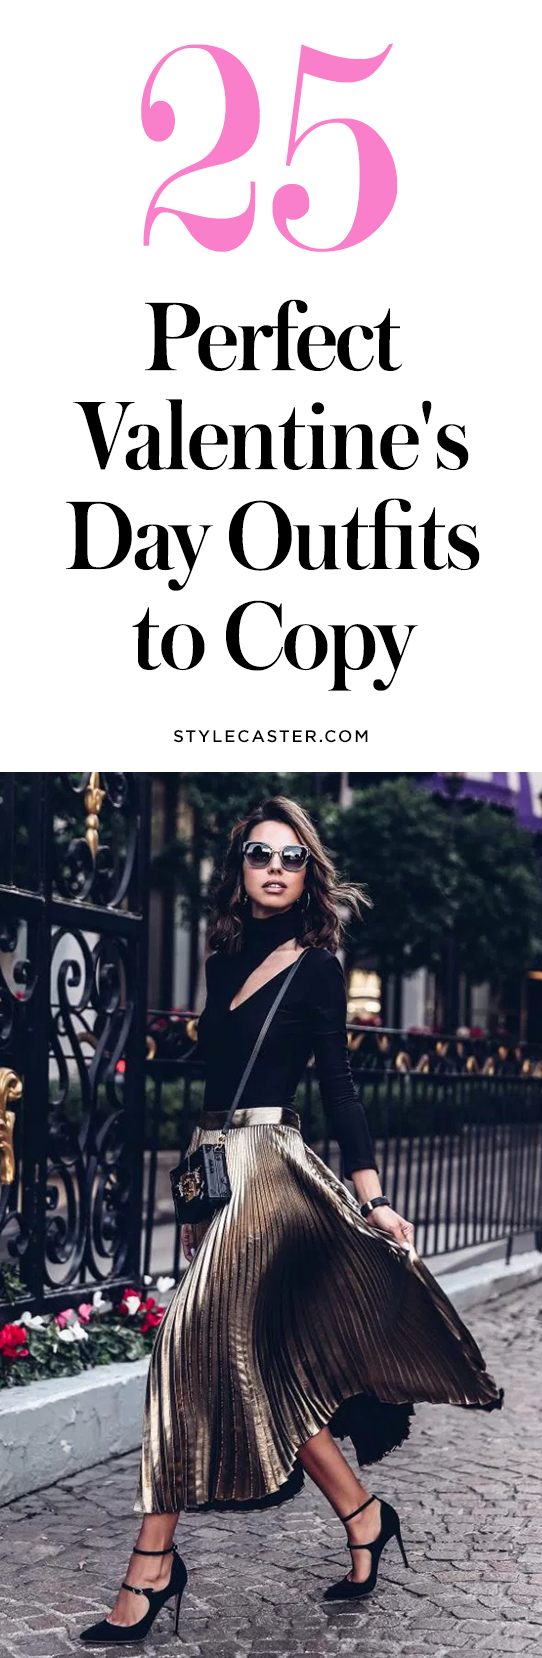 Valentine S Day Outfits What To Wear For Any Date Stylecaster